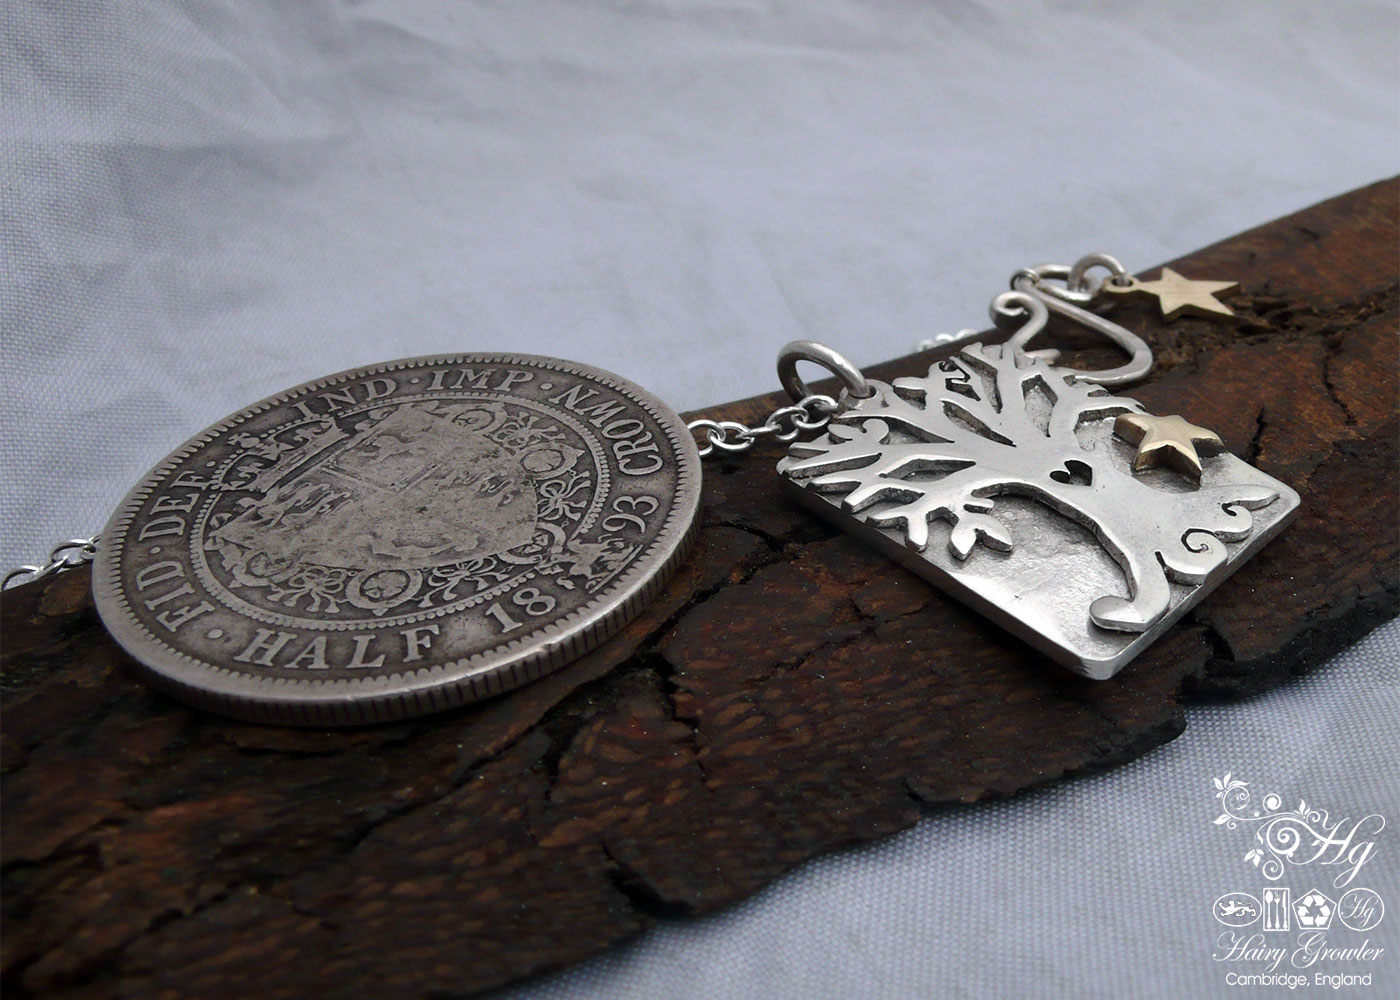 Handcrafted and recycled Victorian silver coins autumn tree necklace made in Cambridge